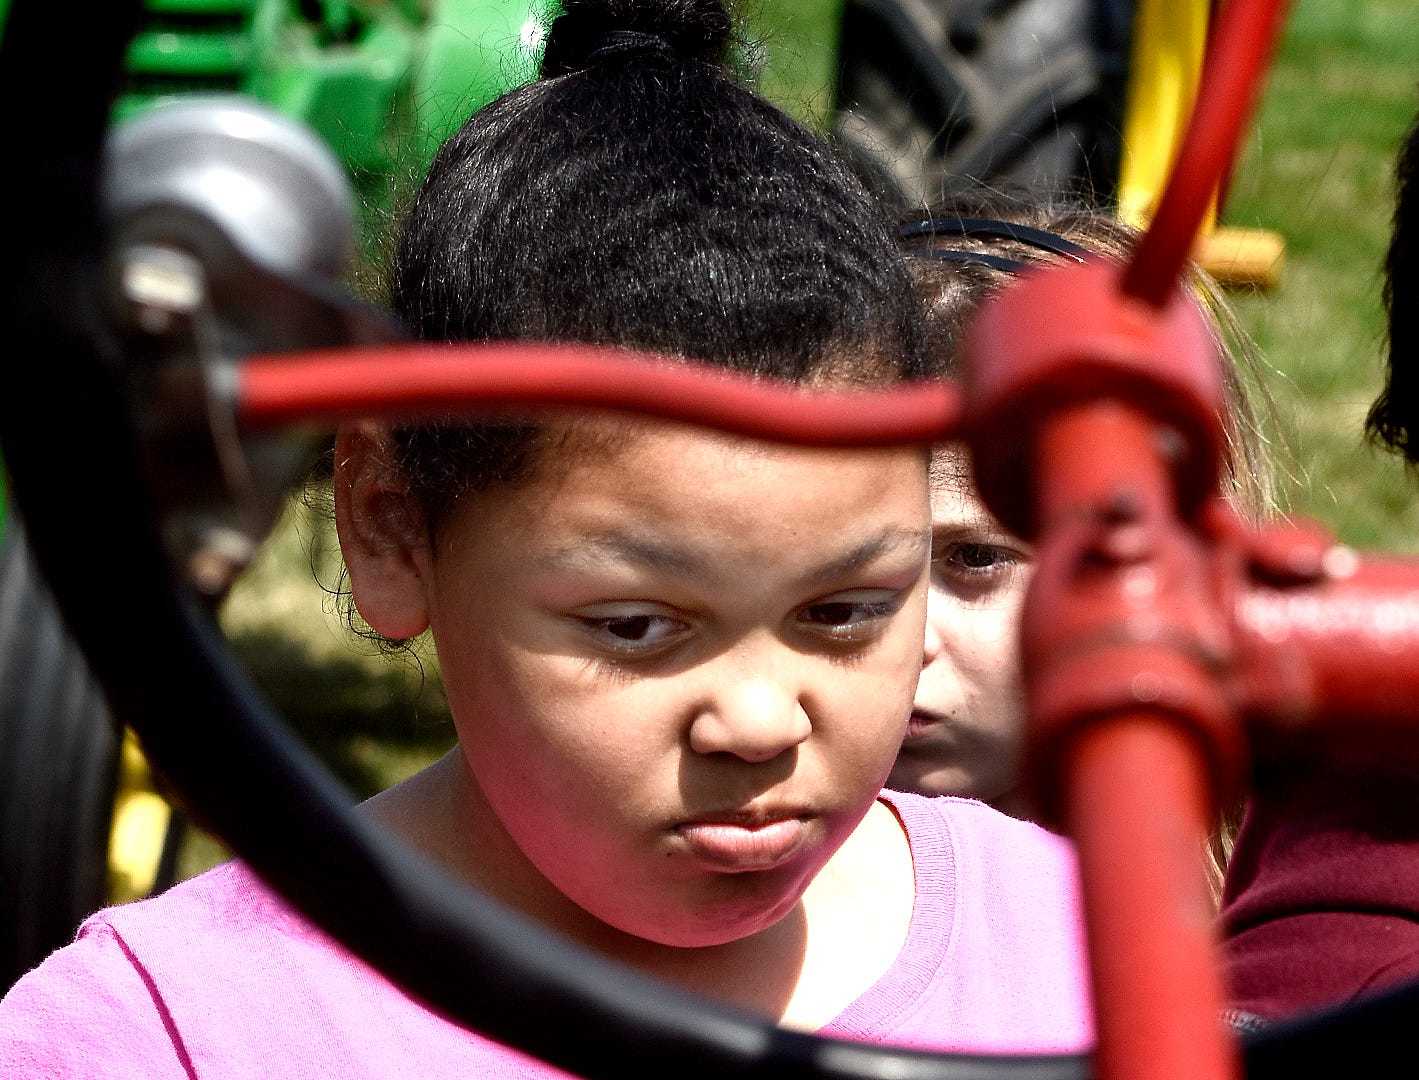 Spring Grove Elementary fourth grader Kyra Williams participates in a demonstration during the district's 6th Annual Rollin' Tractor Show Thursday, April 11, 2019, presented by the Future Farmers Club. Alumni and area residents brought farm equipment to display with the goal of acquainting students with the agriculture industry. The show, which included a parade of equipment, visited the intermediate and elementary schools. Bill Kalina photo